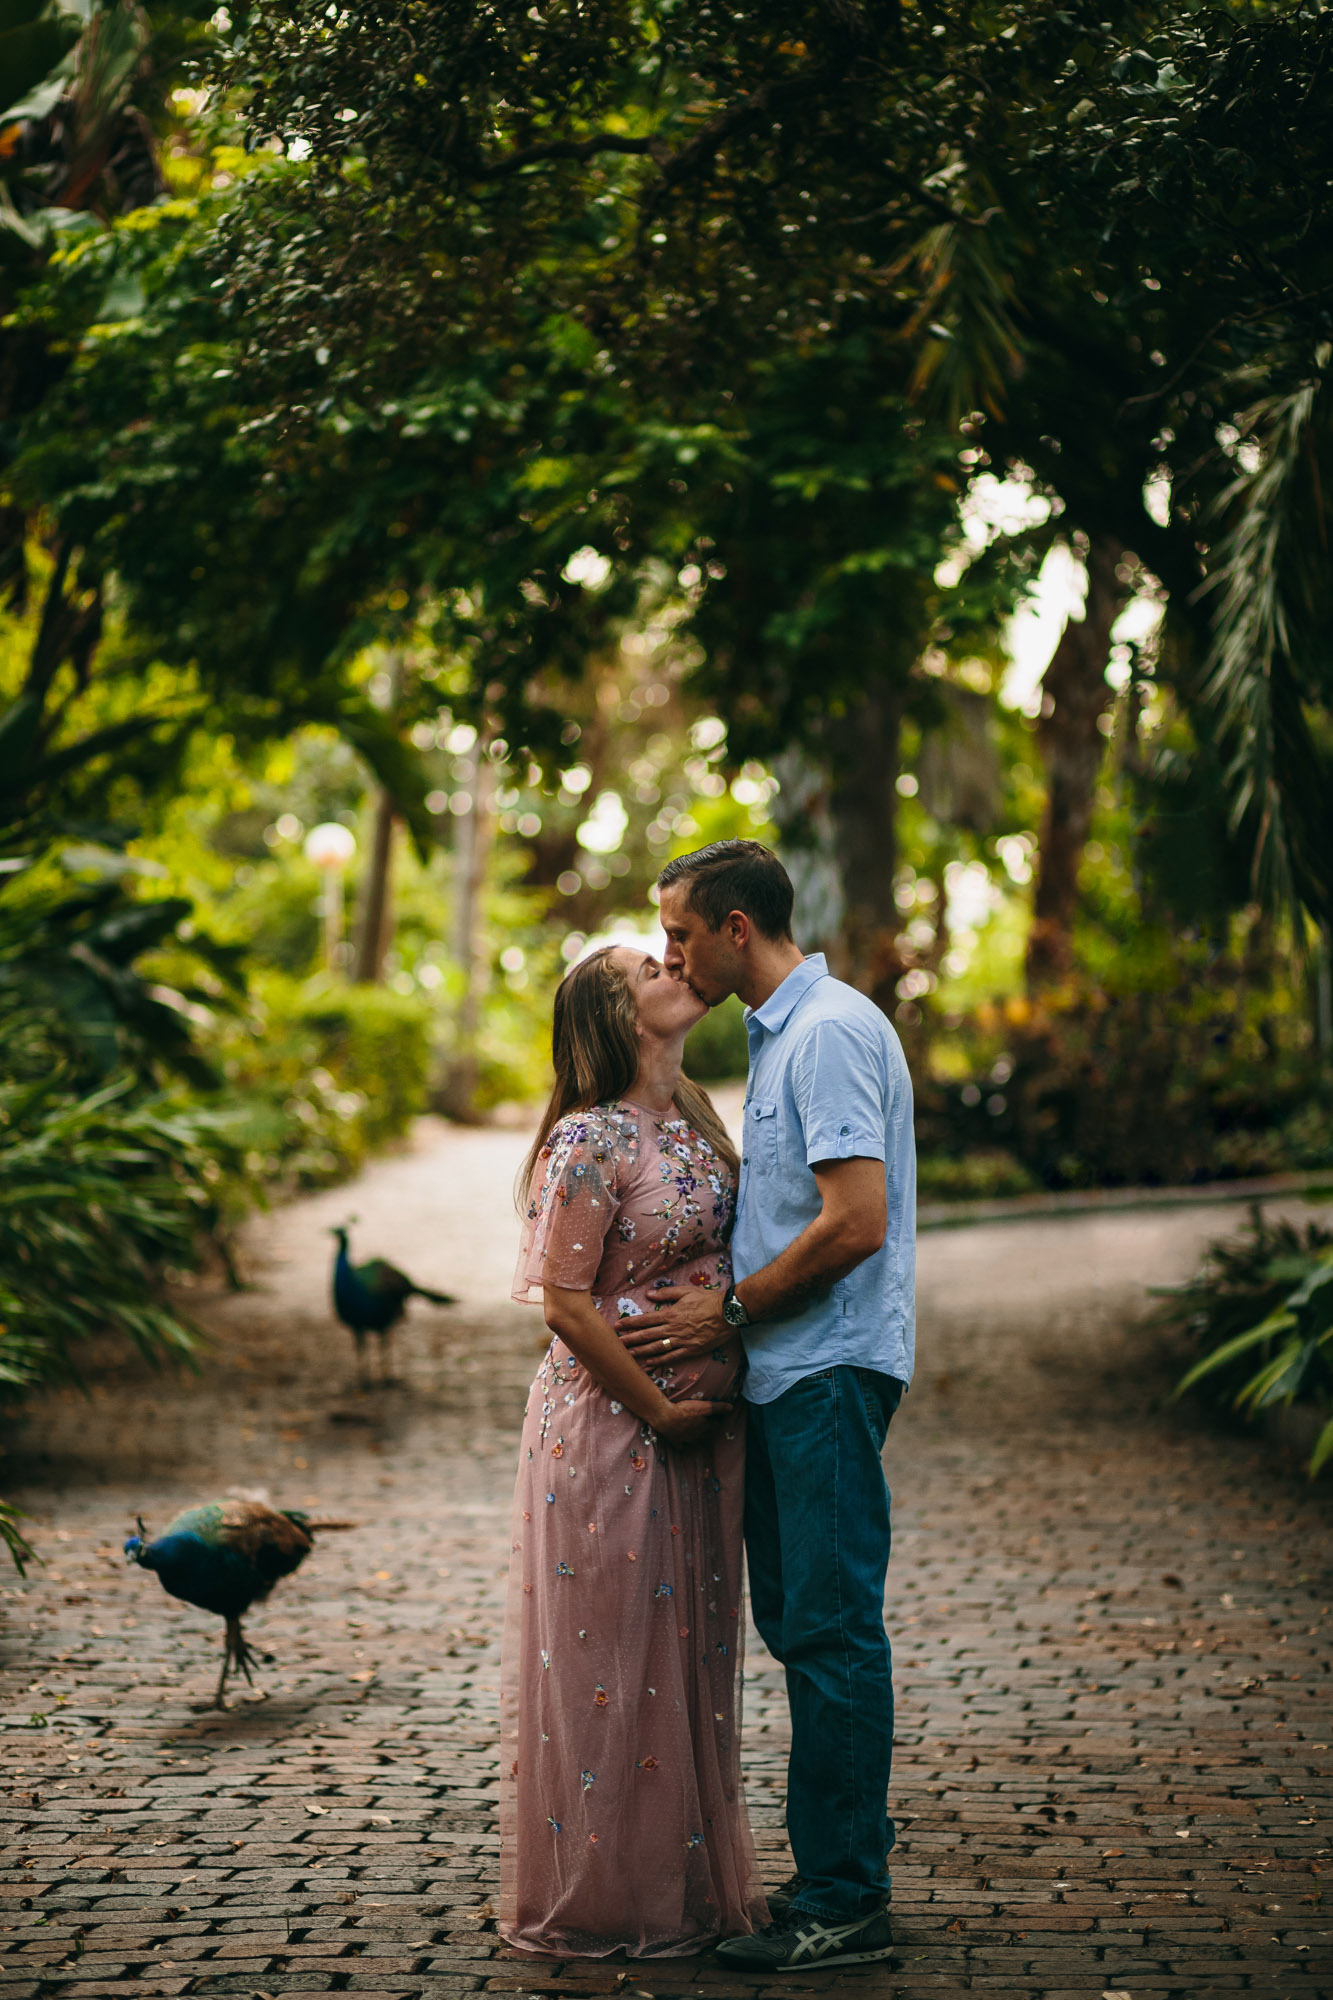 couples maternity photo session, tampa bay fl